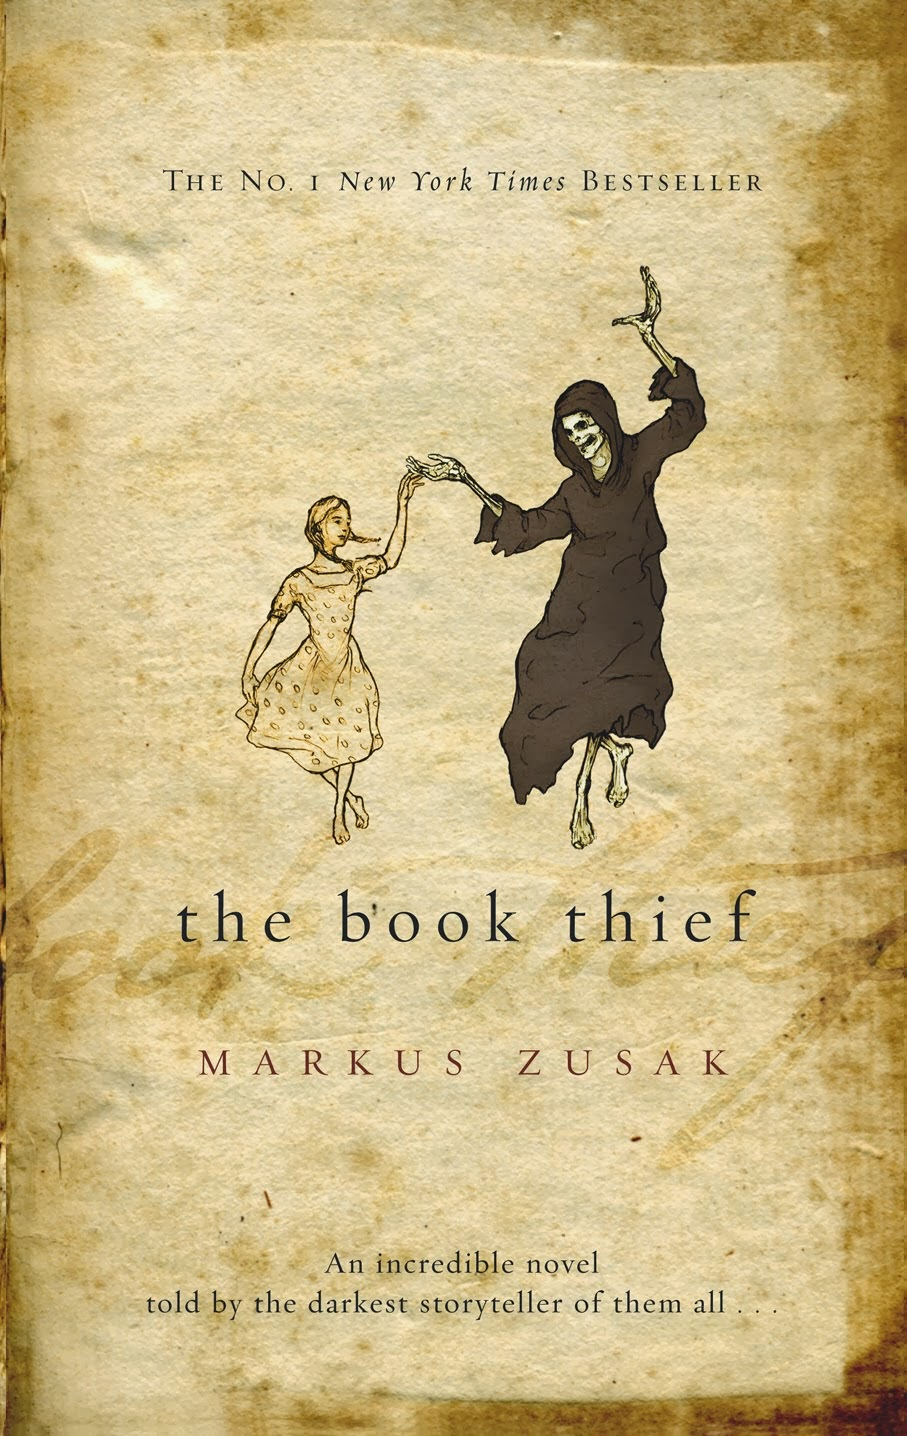 the narrative voice of death ldquo the book thief rdquo by markus zusak the book thief cover